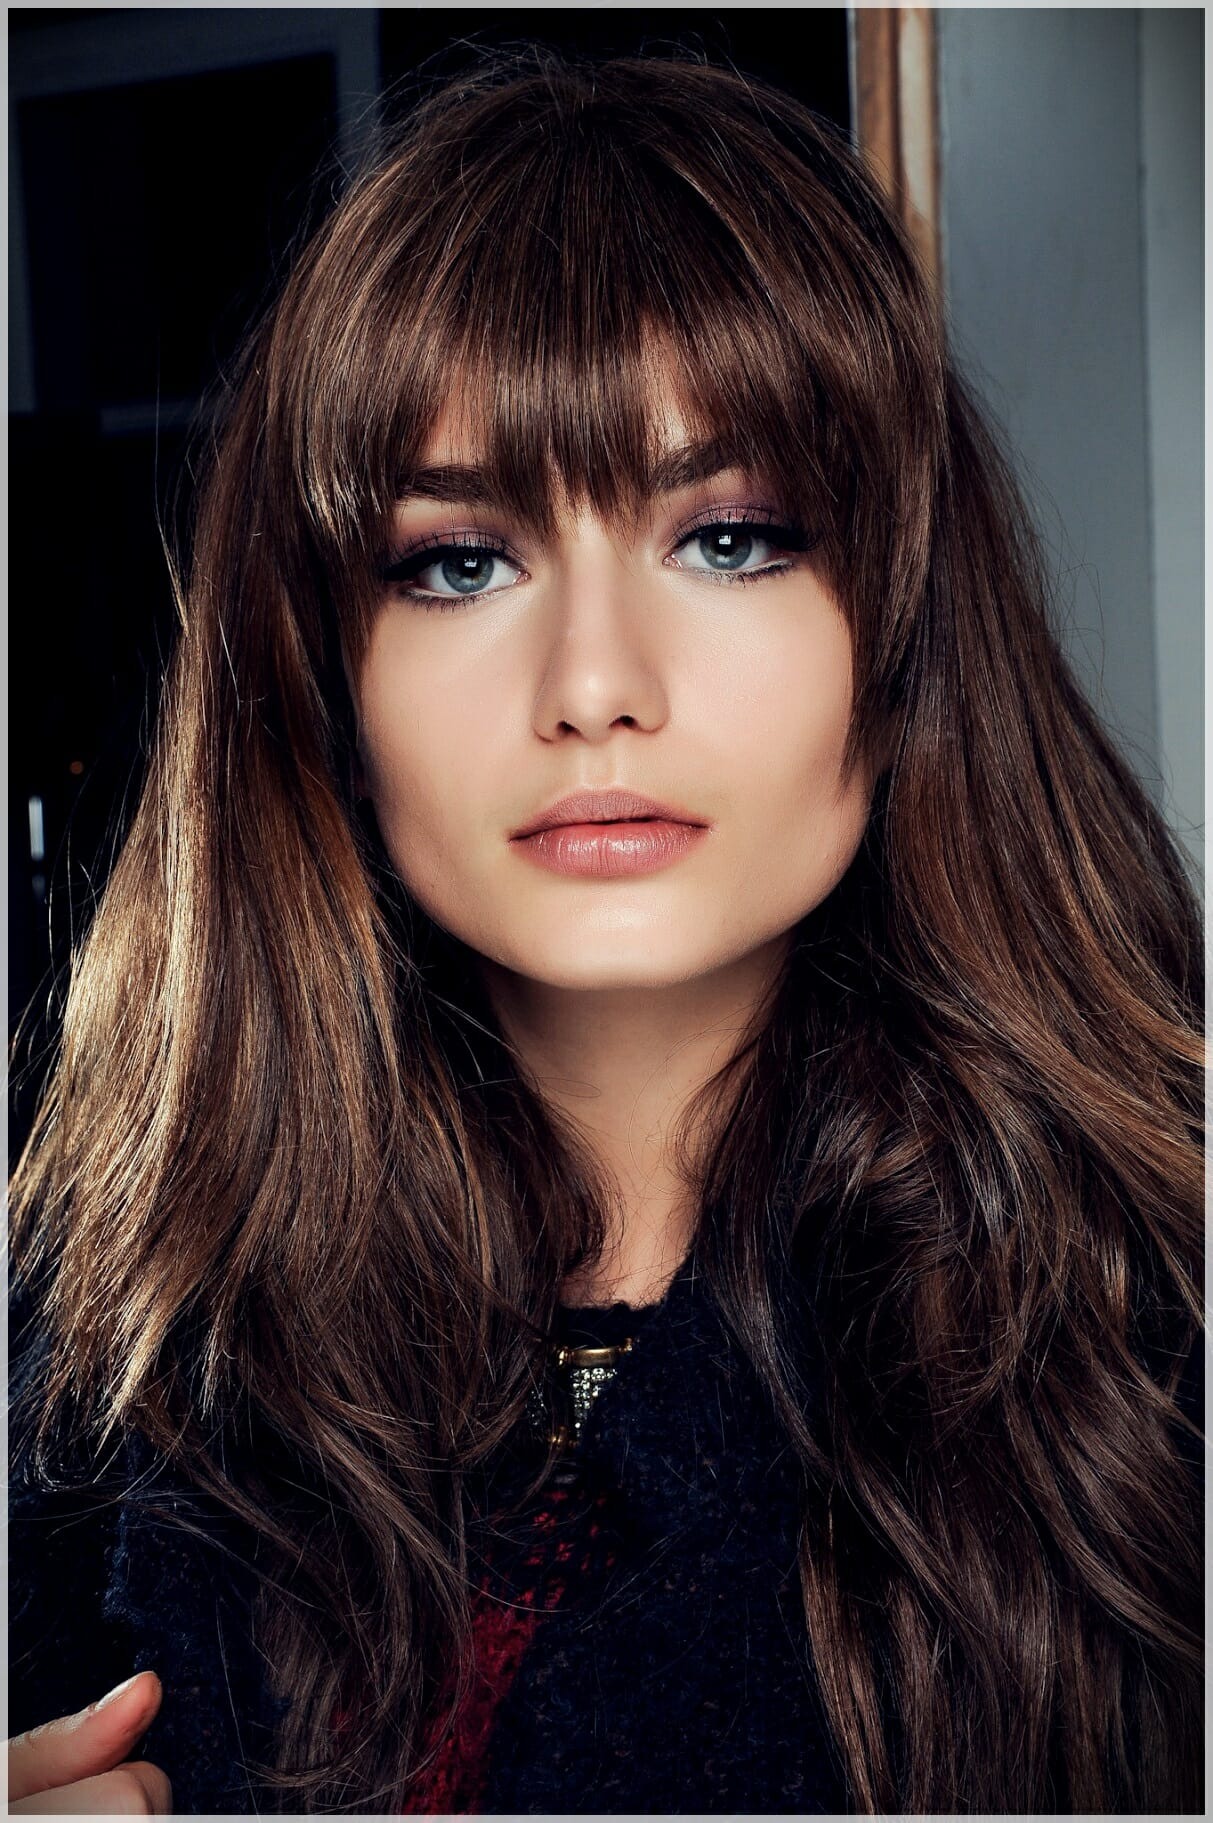 layered haircut with bangs 9 - Why getting bangs will never go out of fashion?